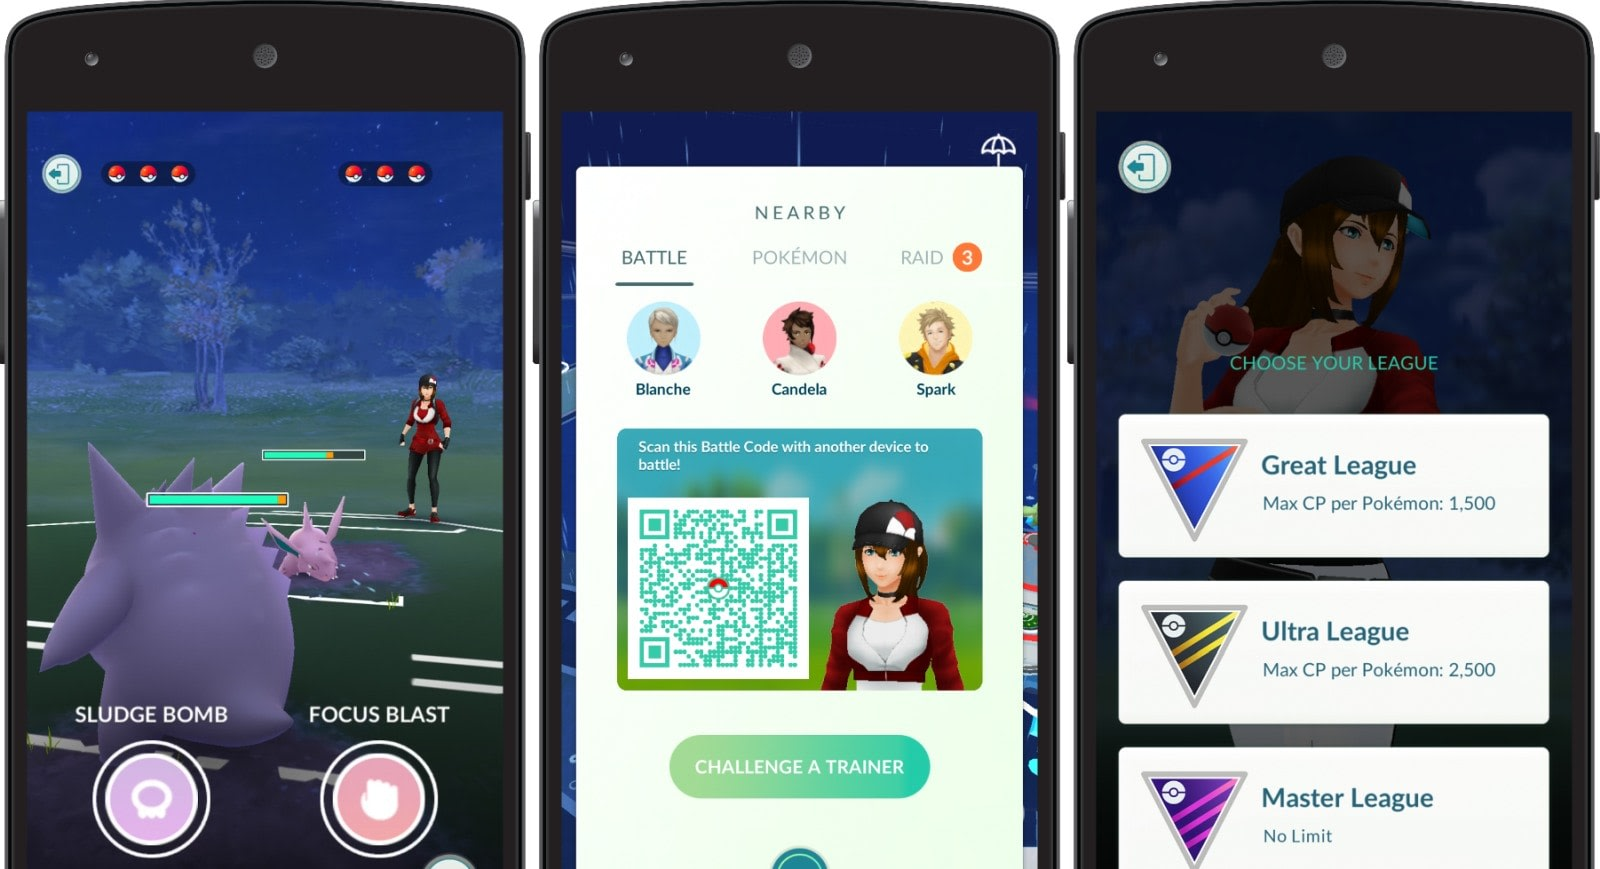 Pokémon Go' players can finally fight against each other